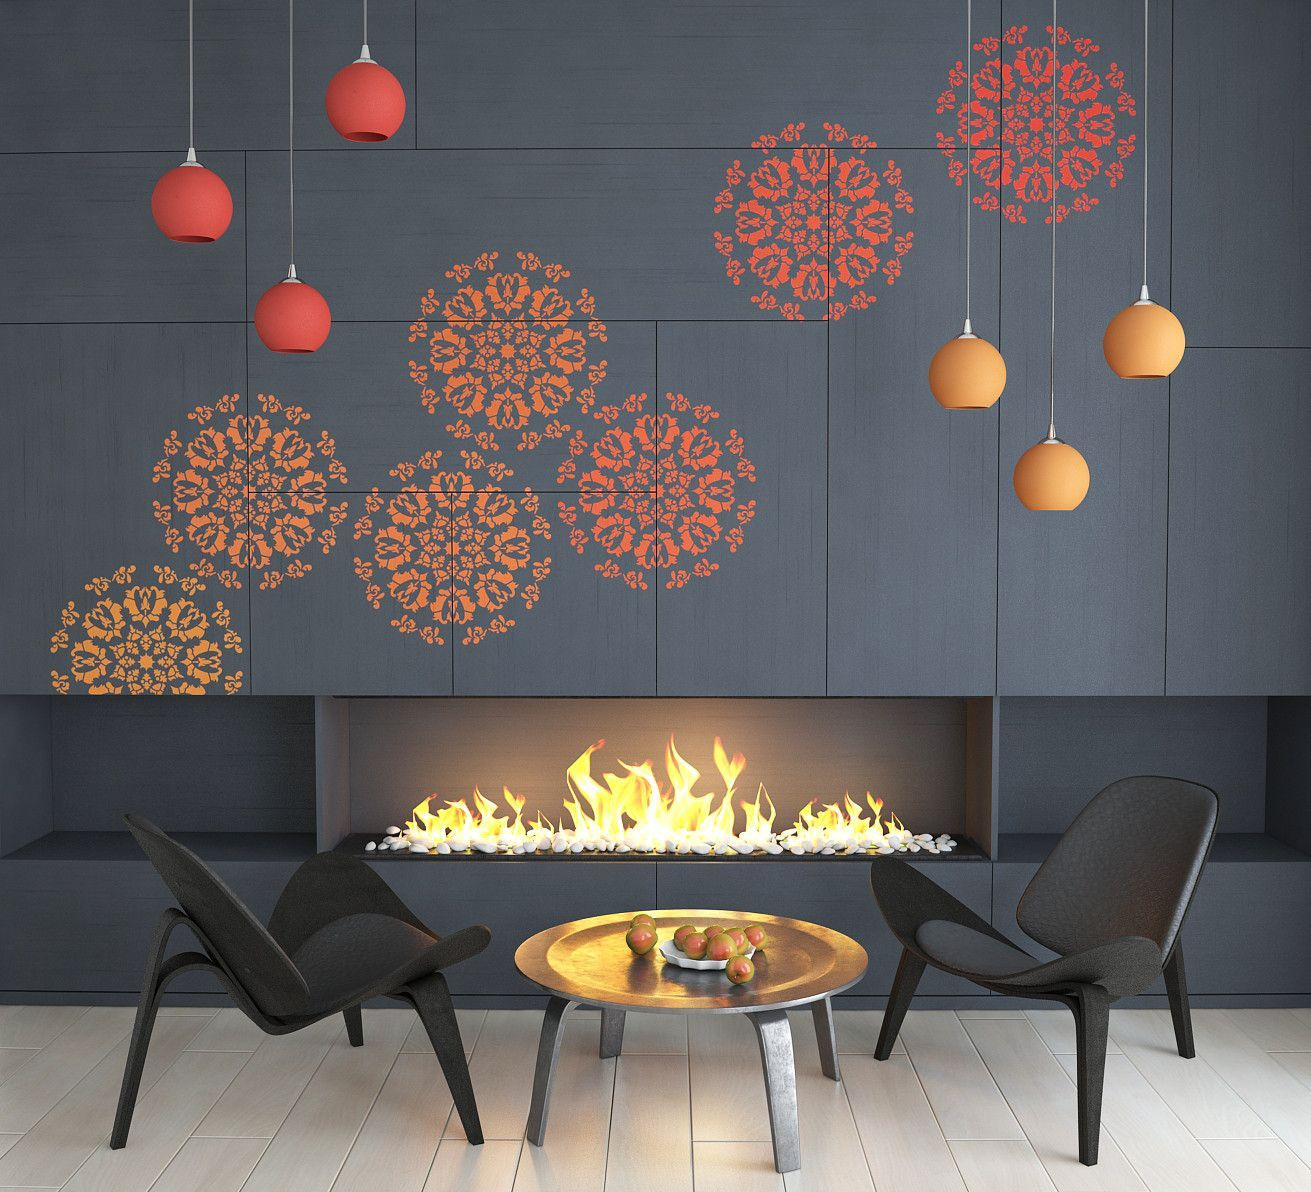 Mandala stencil stencil for home decor wall stencil mandala stencil stencil for home decor wall stencil furniture st stencilslab wall amipublicfo Images